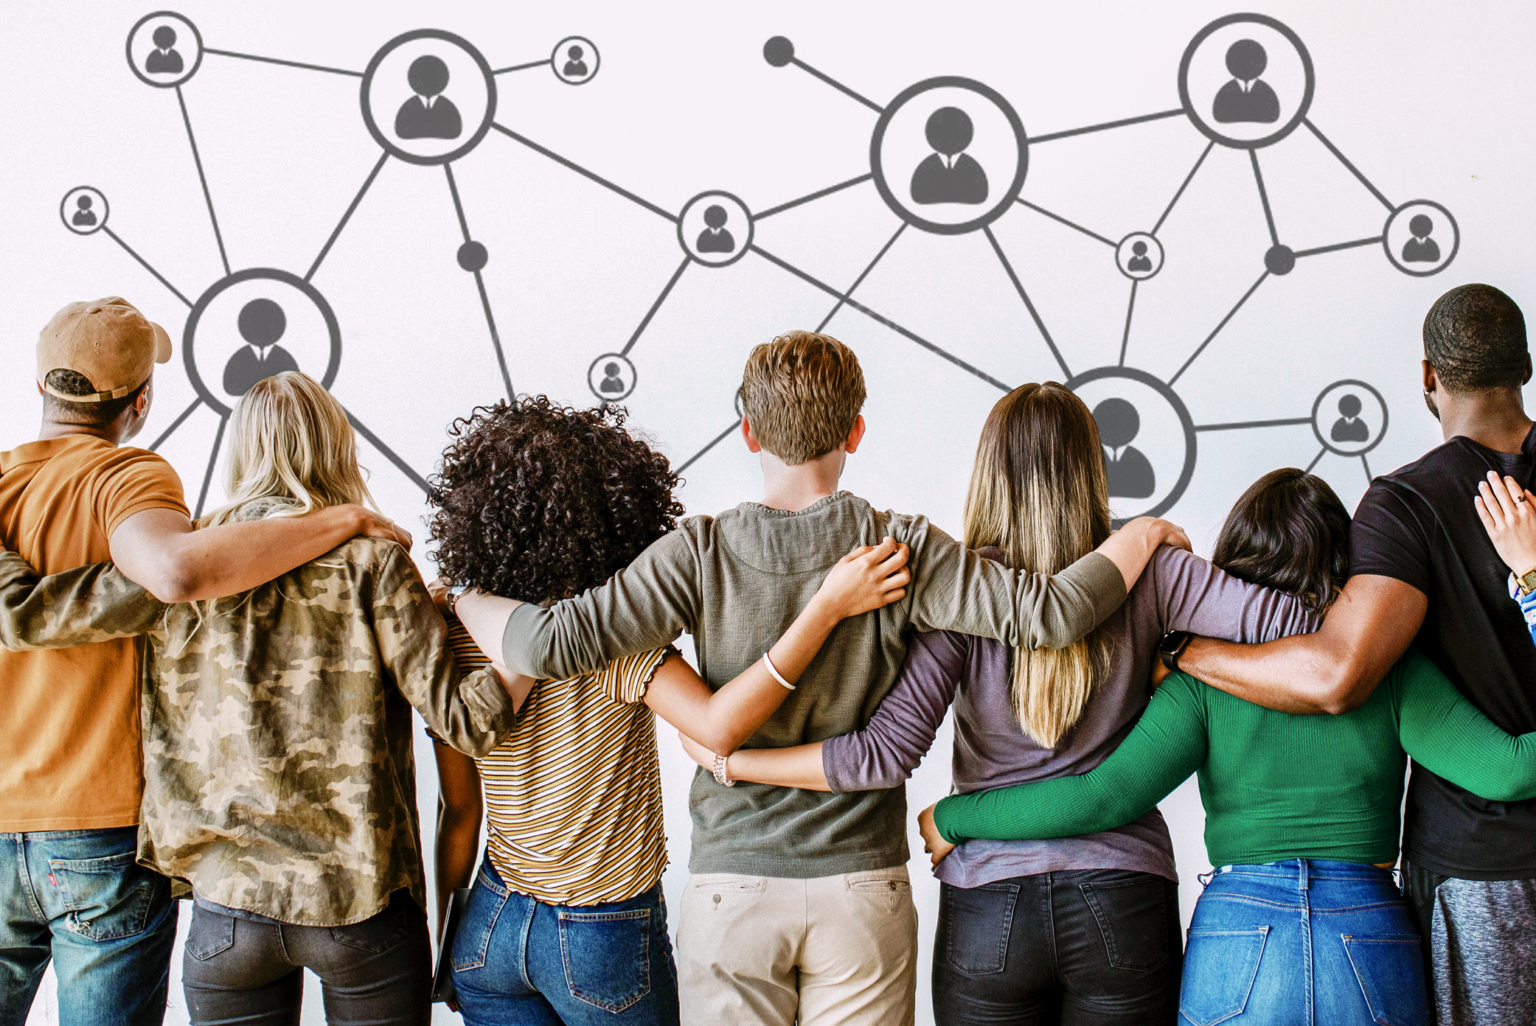 How to utilise the power of your network